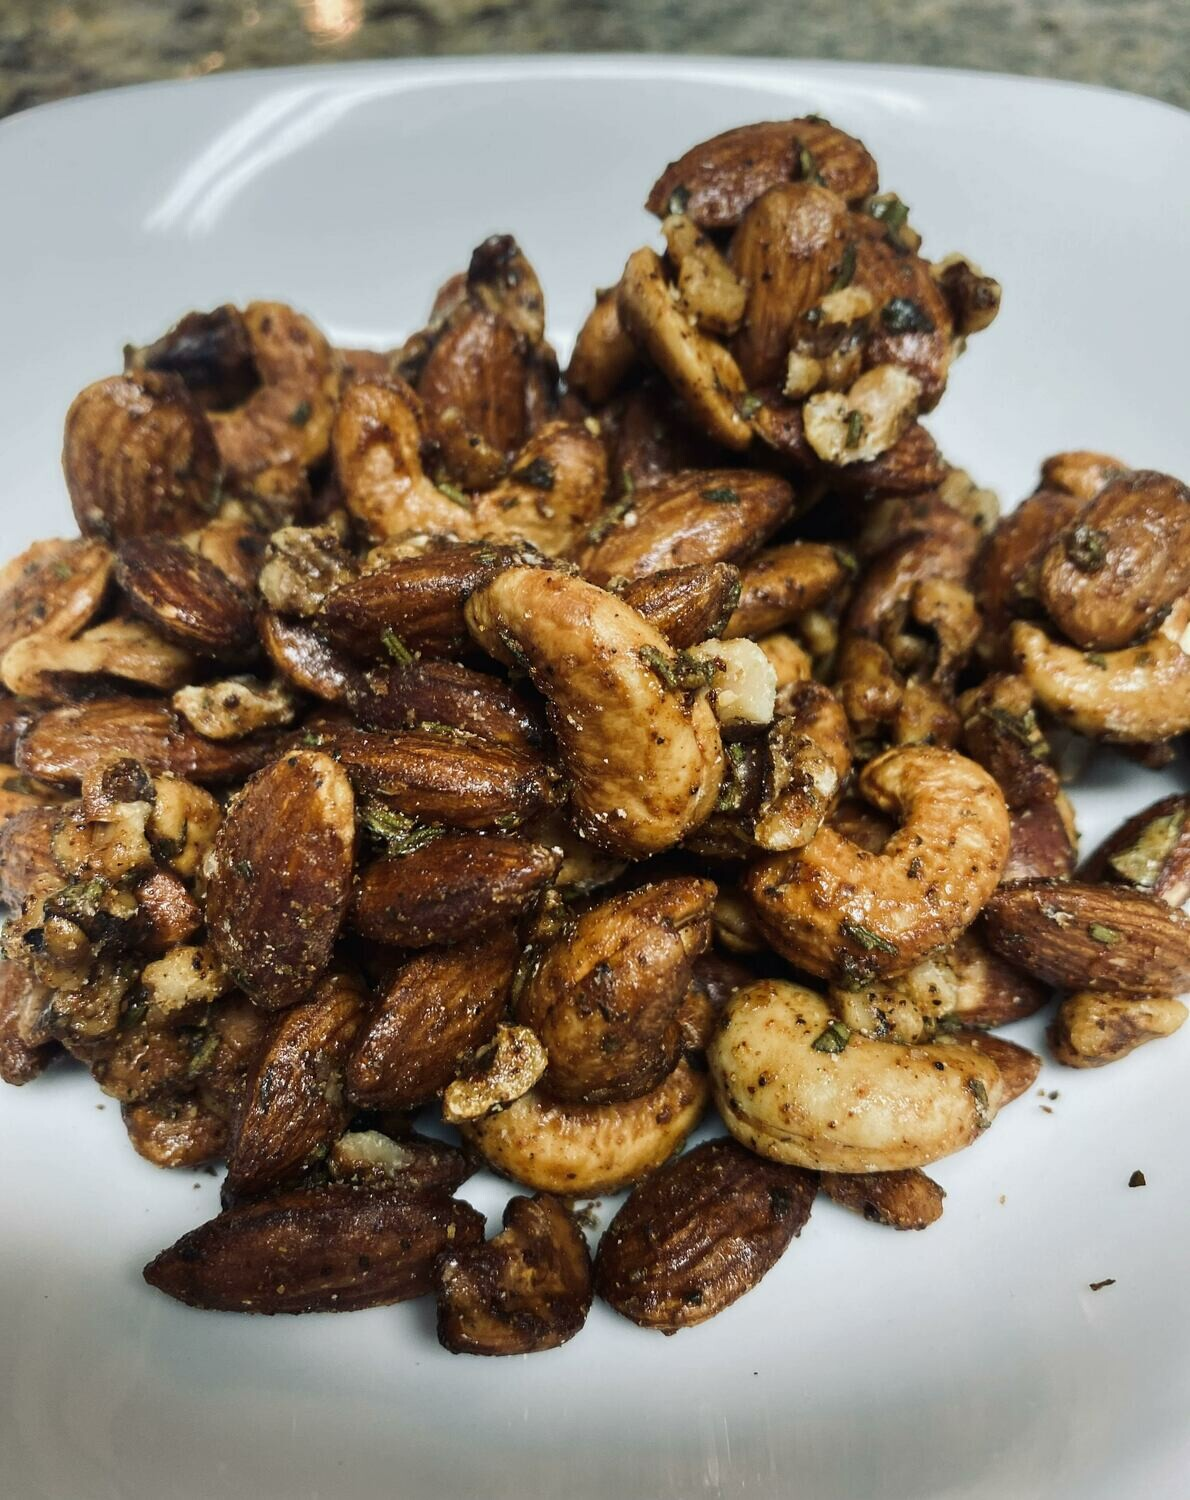 House Roasted Nuts